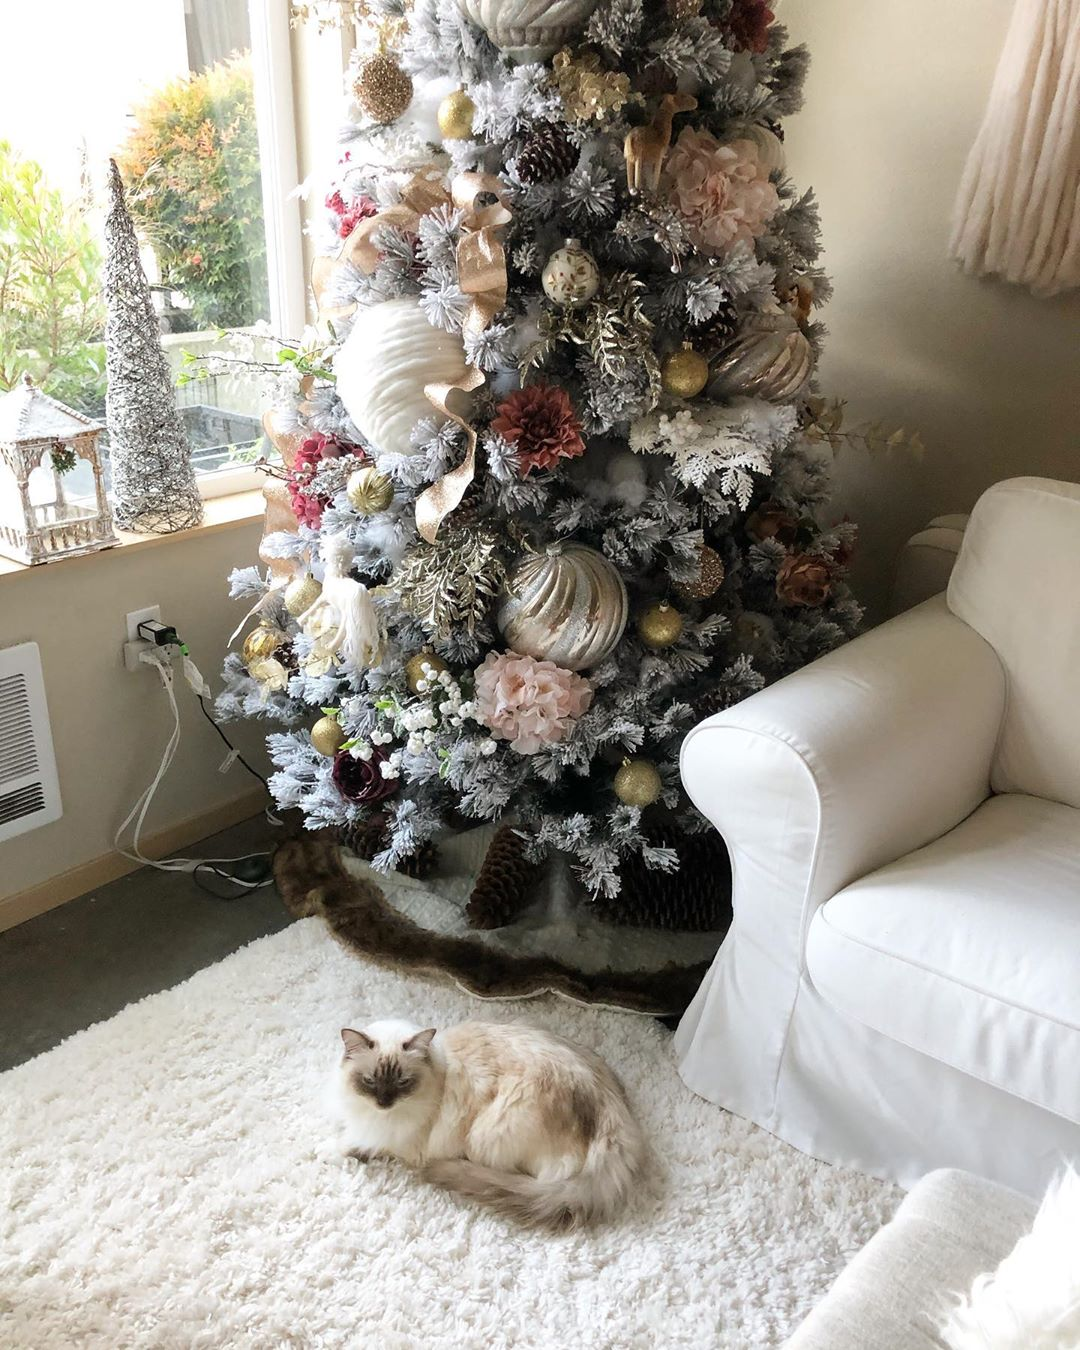 Cat and beautifully decorated Christmas tree